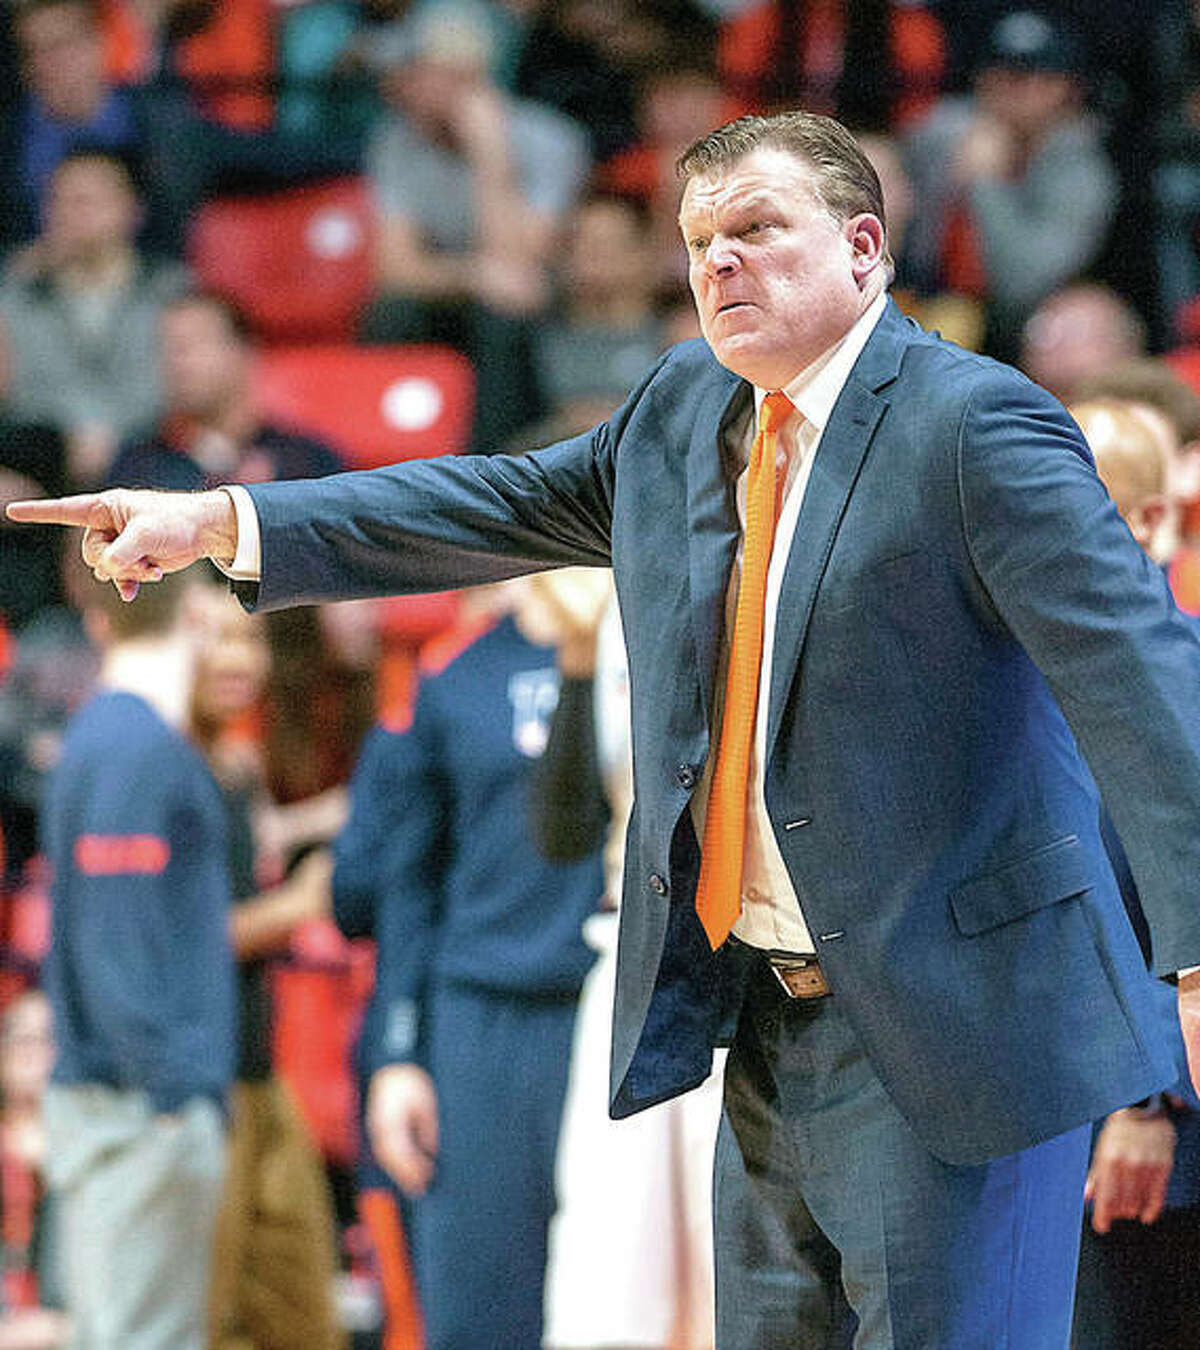 Illinois coach Brad Underwood motions to his players during Thursday night's game against Iowa in Champaign.